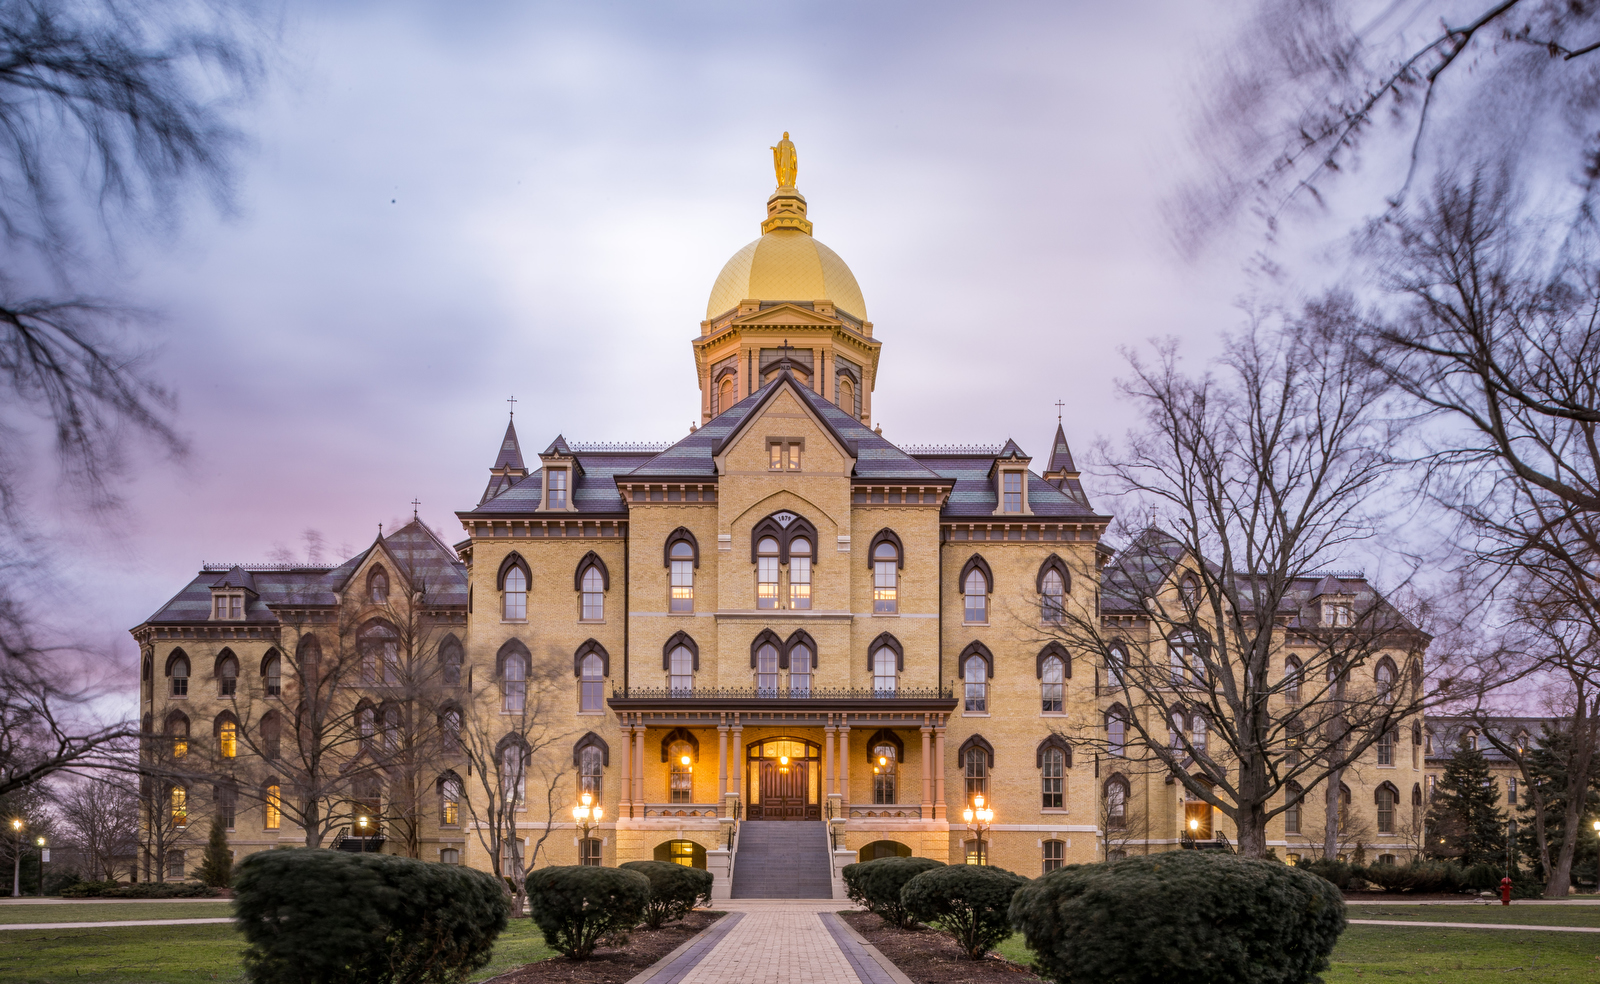 university of notre dame college essay University of notre dame is a private institution that was founded in 1842 it has a total undergraduate enrollment of 8,576, its setting is city, and the campus size is 1,265 acres university of notre dame's ranking in the 2019 edition of best colleges is national universities, 18.